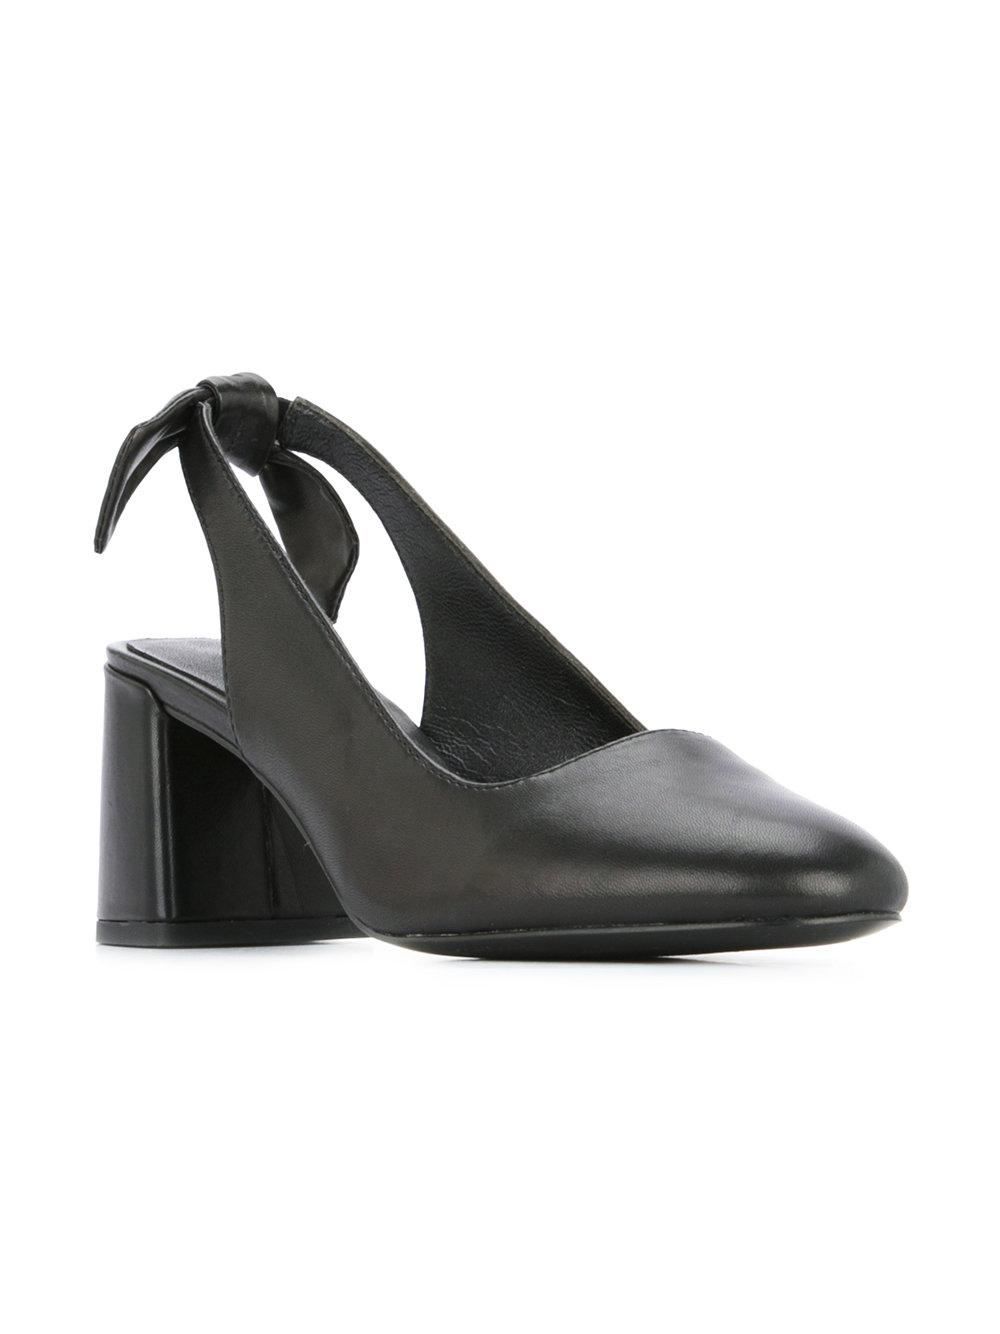 Senso Iliana slingback pumps manchester great sale cheap online sale eastbay how much online outlet wholesale price TmvsYwJo